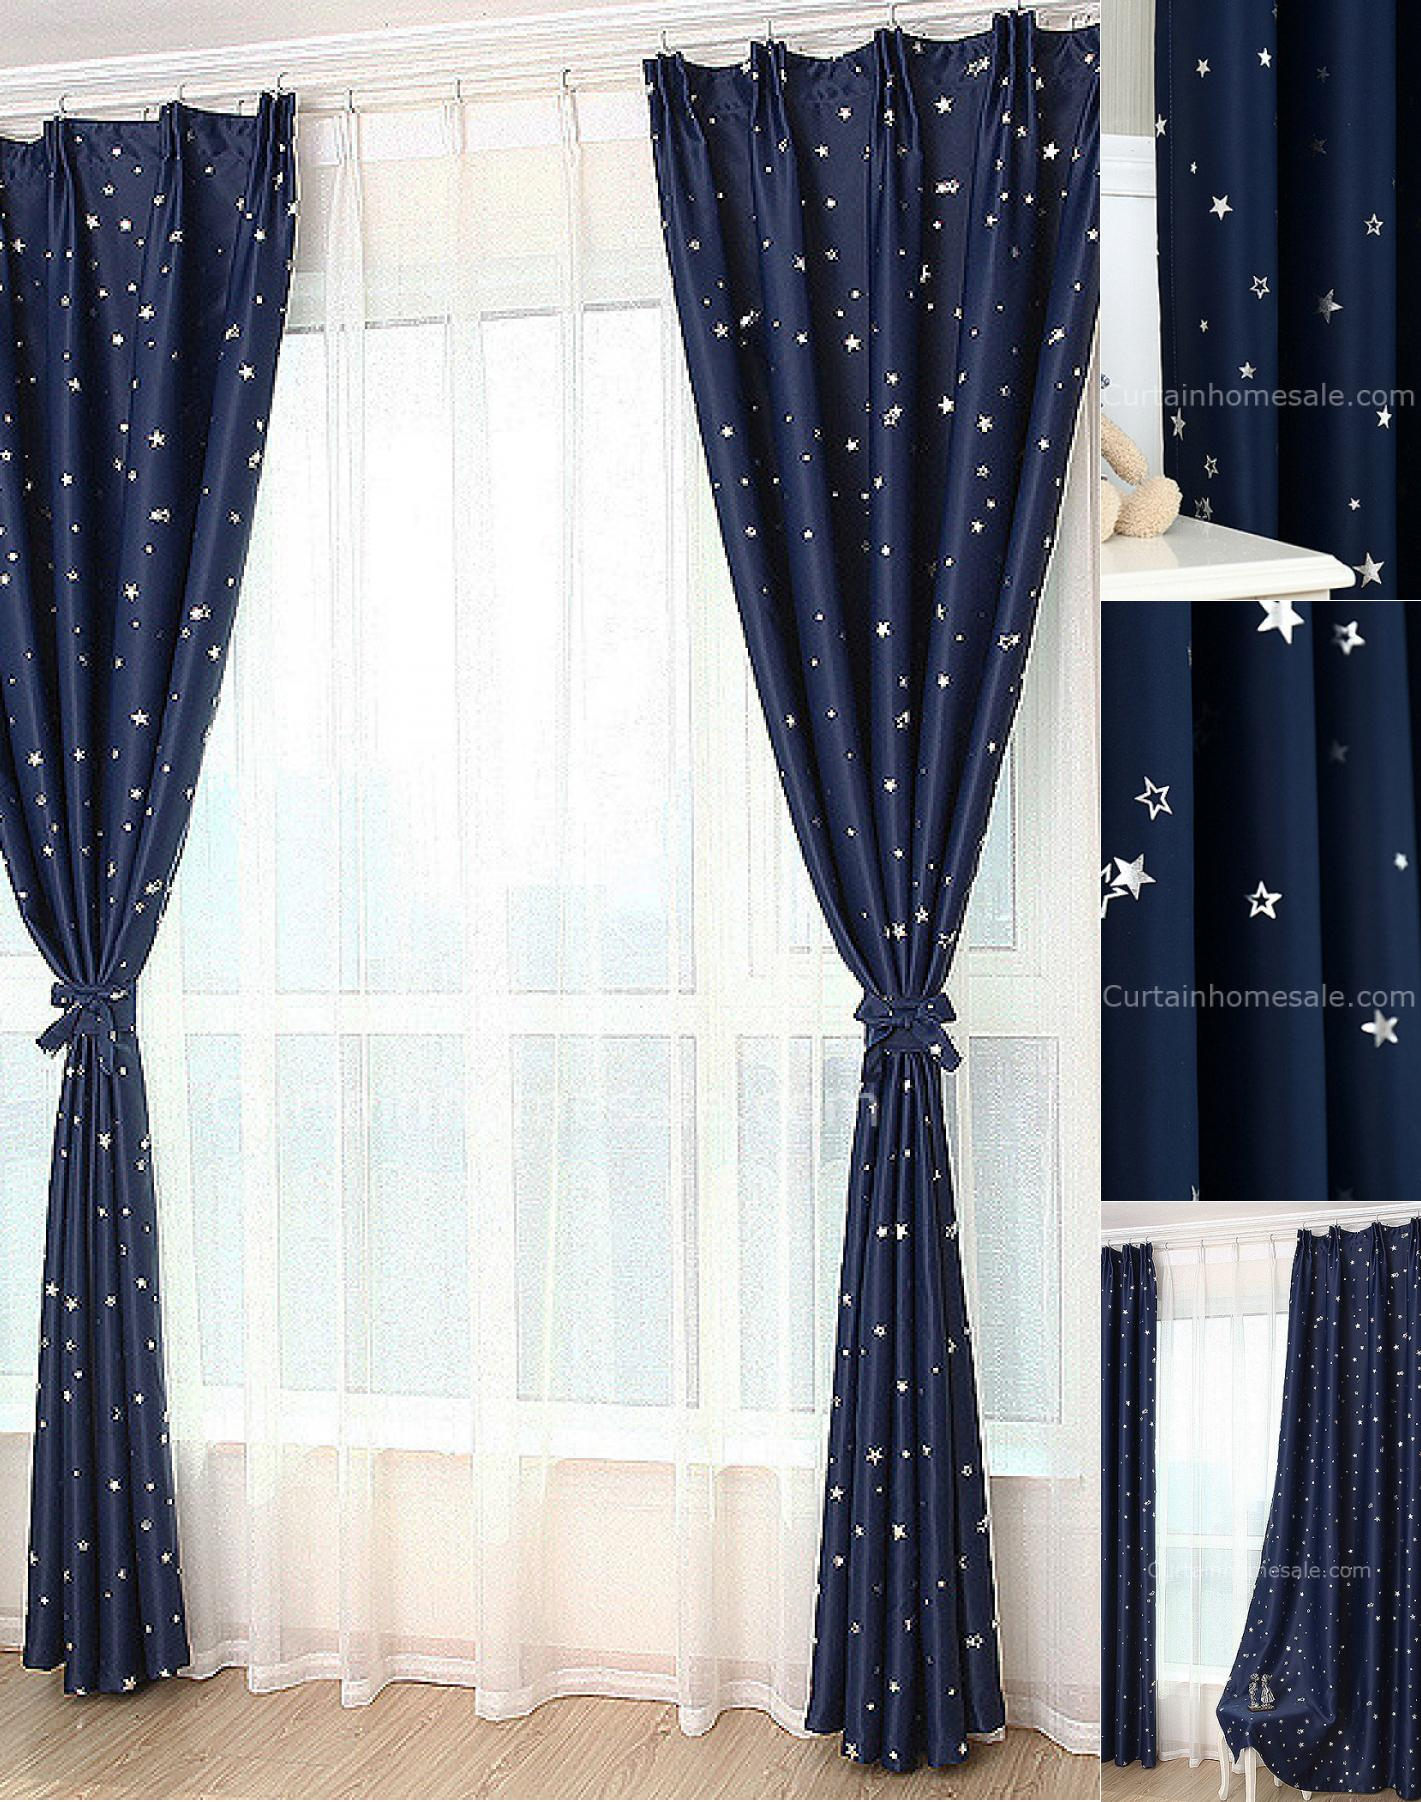 affordable-dark-blue-star-blackout-fiber-antique-chic-curtains-chs791-1-merge